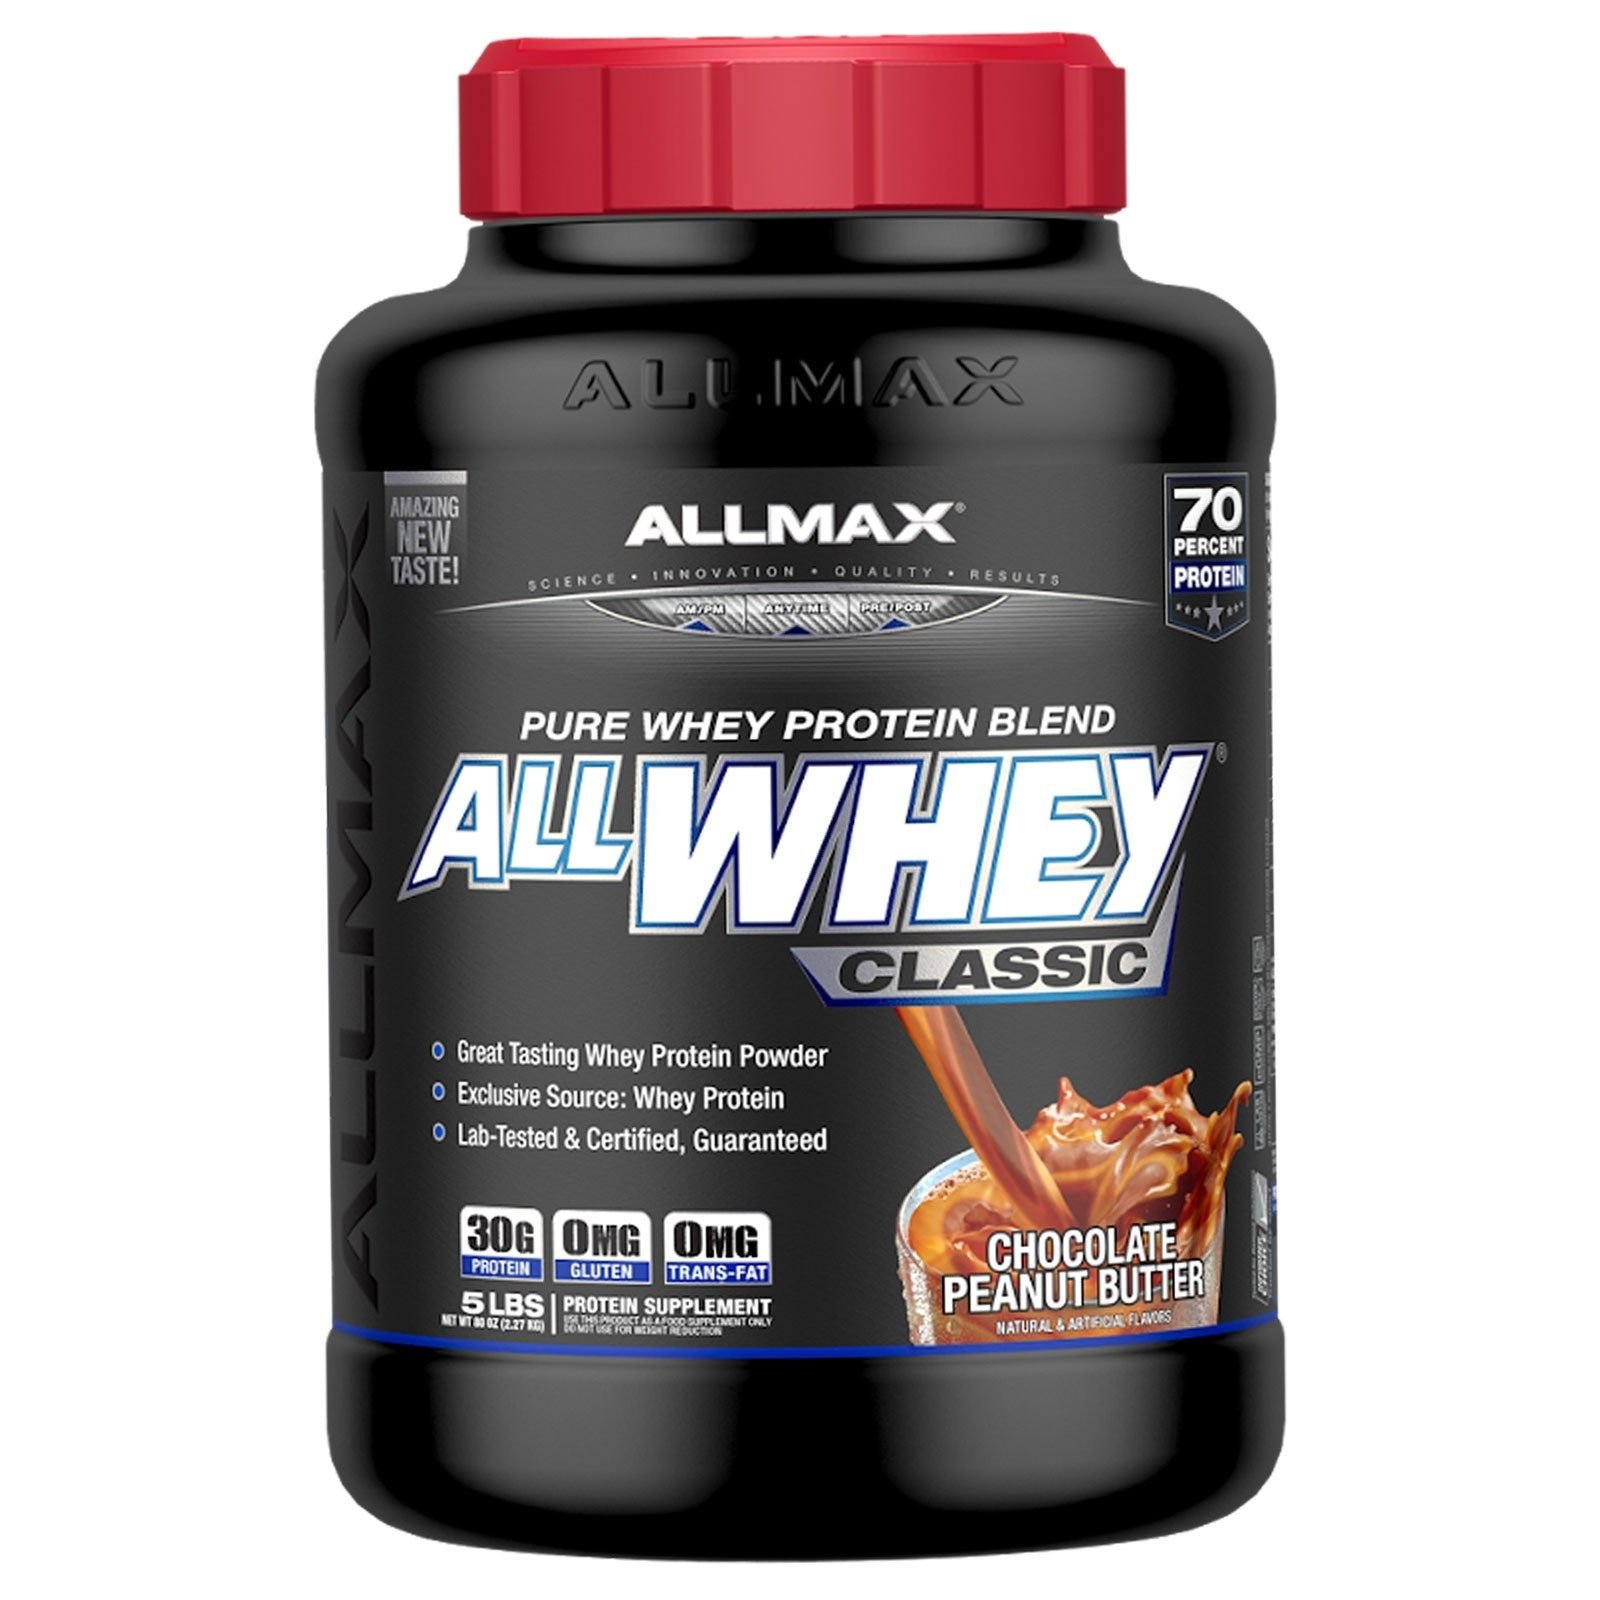 ALLMAX Nutrition AllWhey Classic 100 Whey Protein Chocolate Peanut Butter 5 lbs 2 27 kg